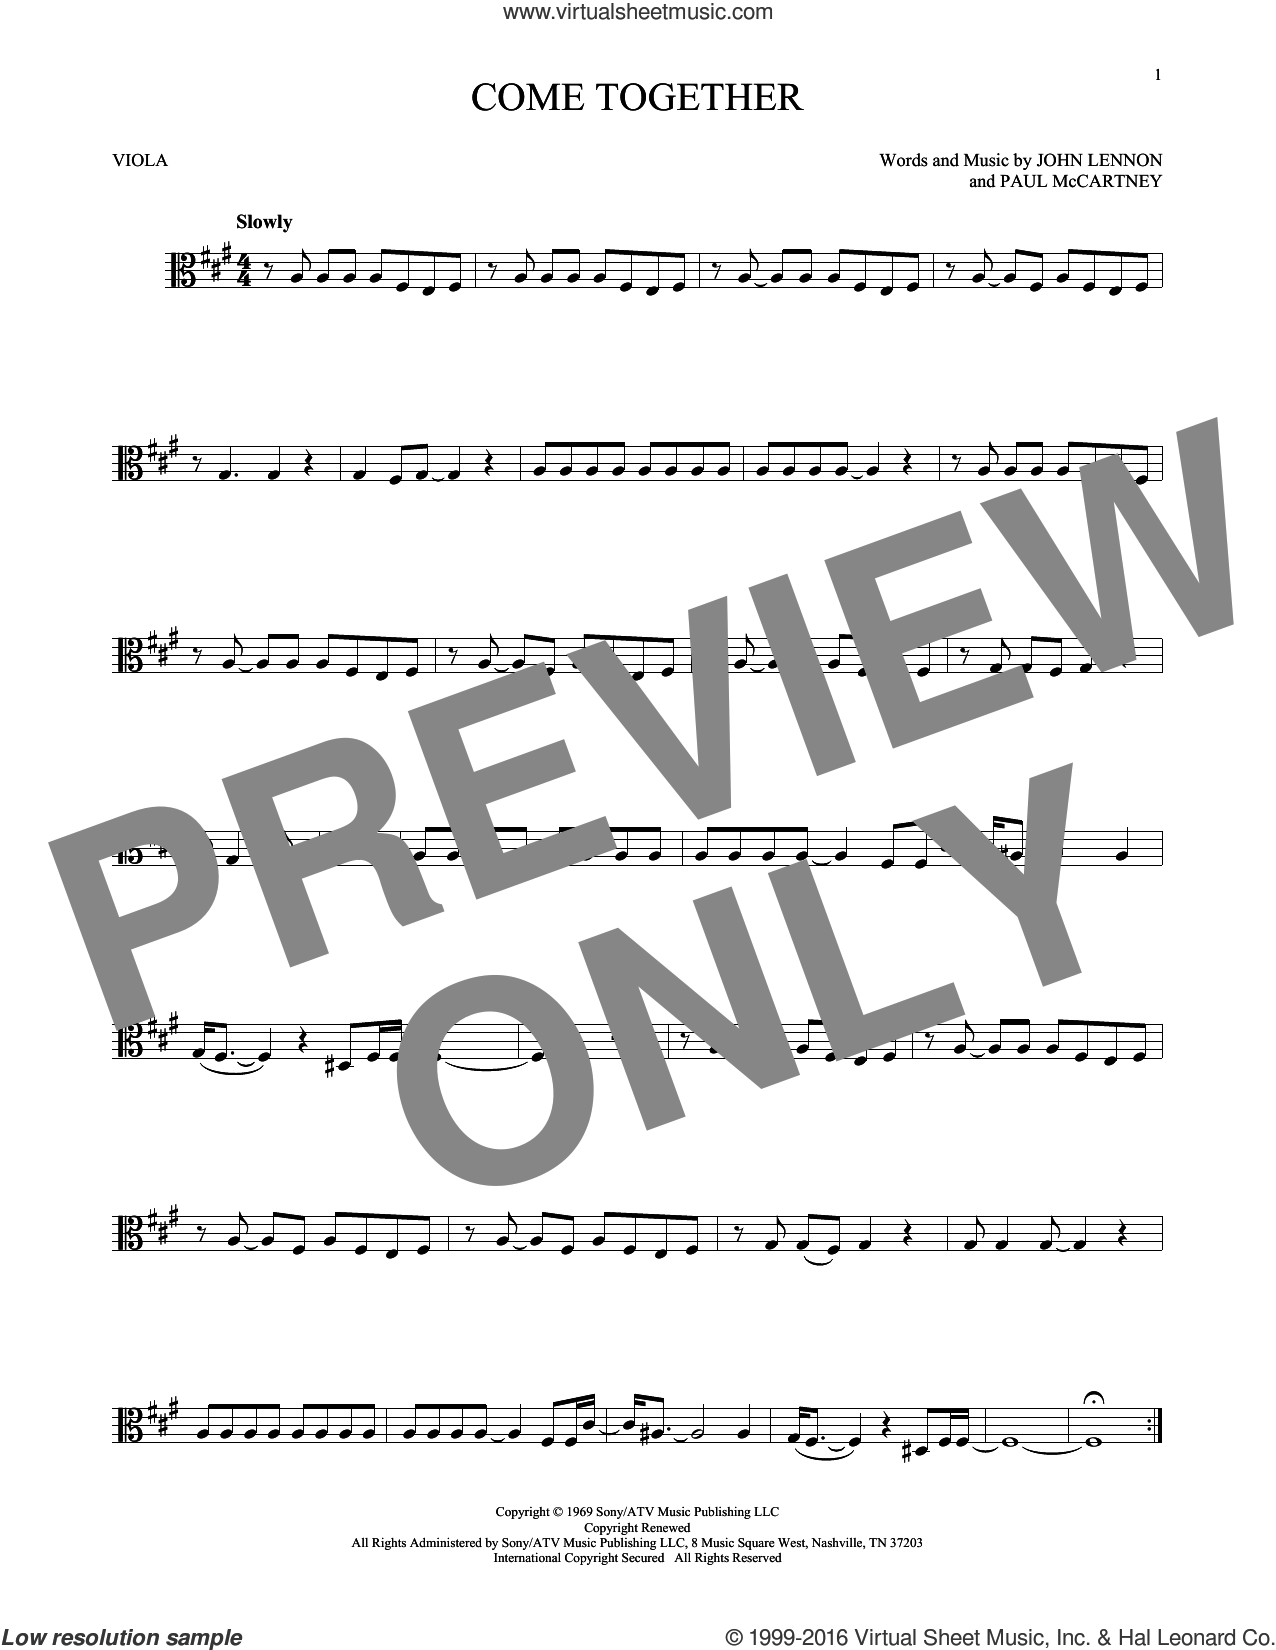 Come Together sheet music for viola solo by The Beatles, John Lennon and Paul McCartney, intermediate skill level